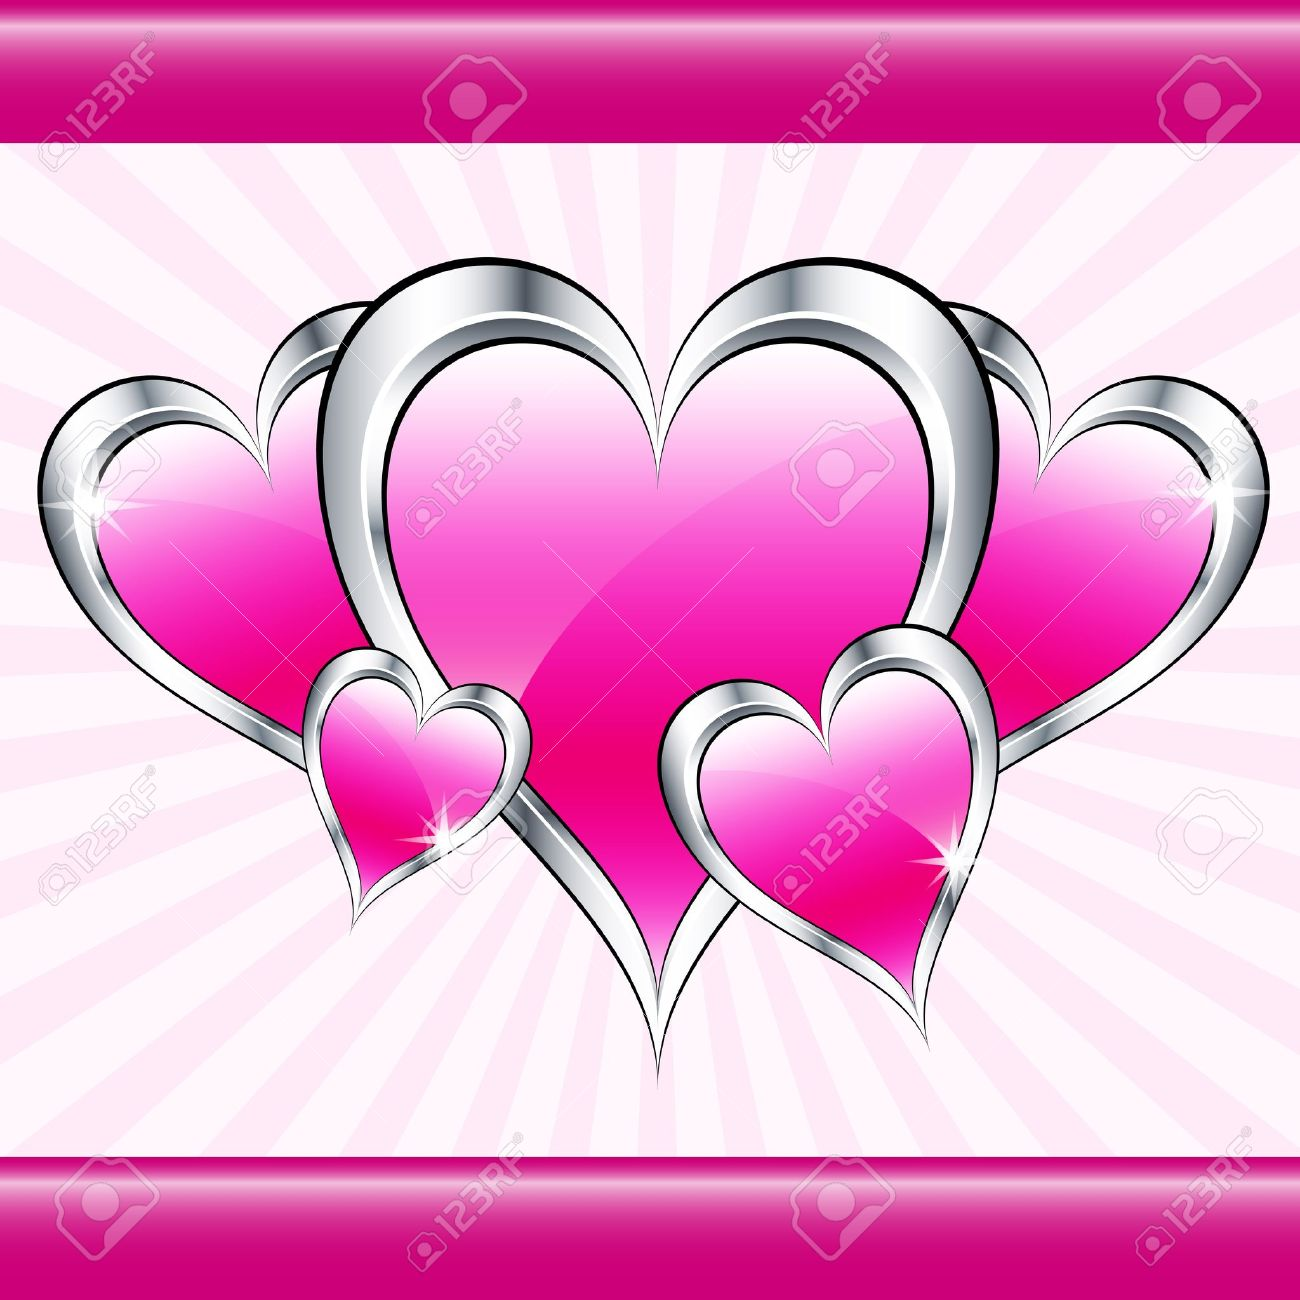 pink love hearts symbolizing valentines day mothers day or wedding